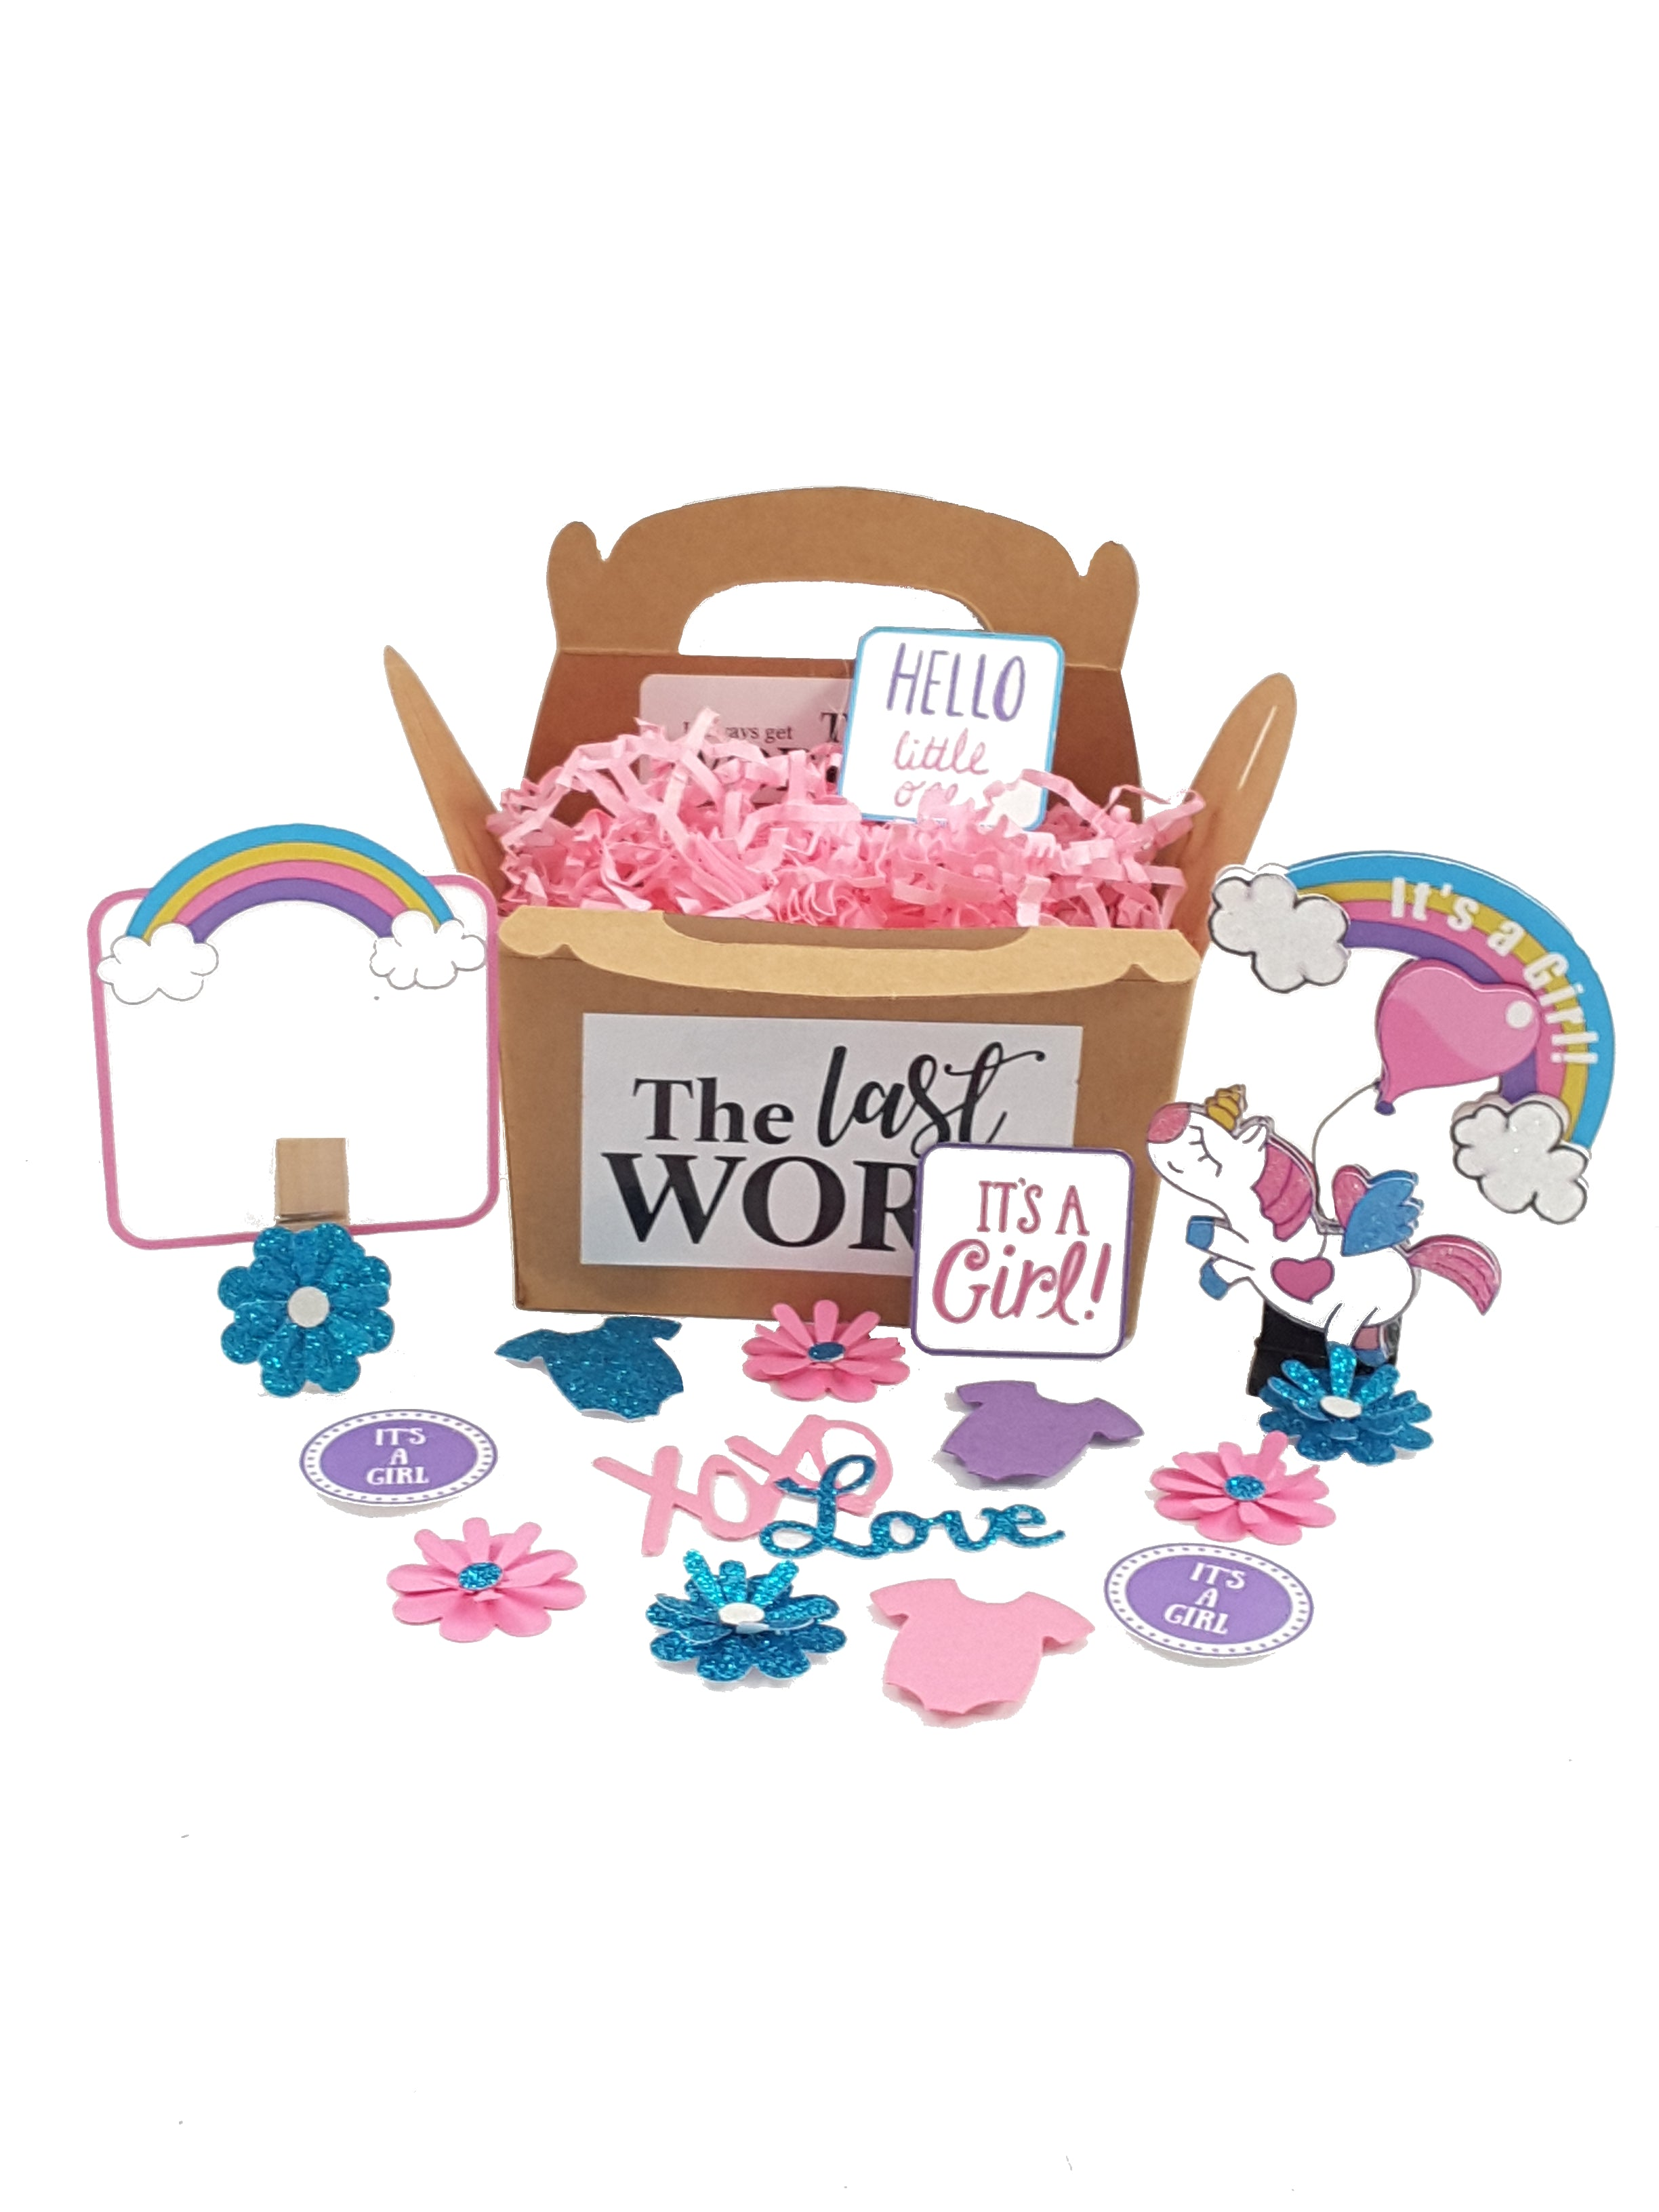 Personalized It's a Boy/It's a Girl Unicorn & Rainbow Stand-up Baby Card - TheLastWordBish.com